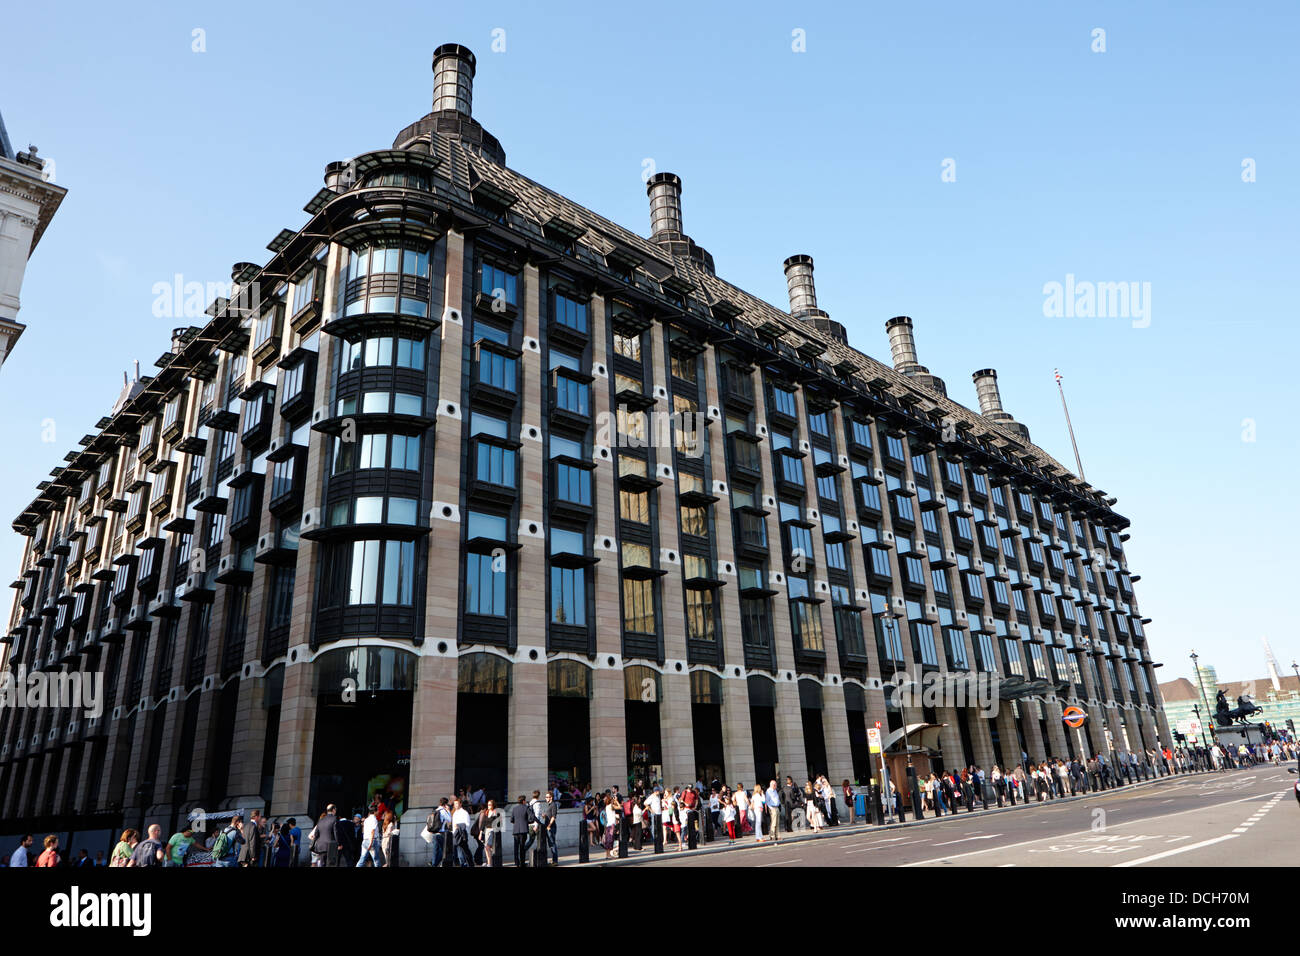 portcullis house home to mps offices London England UK - Stock Image